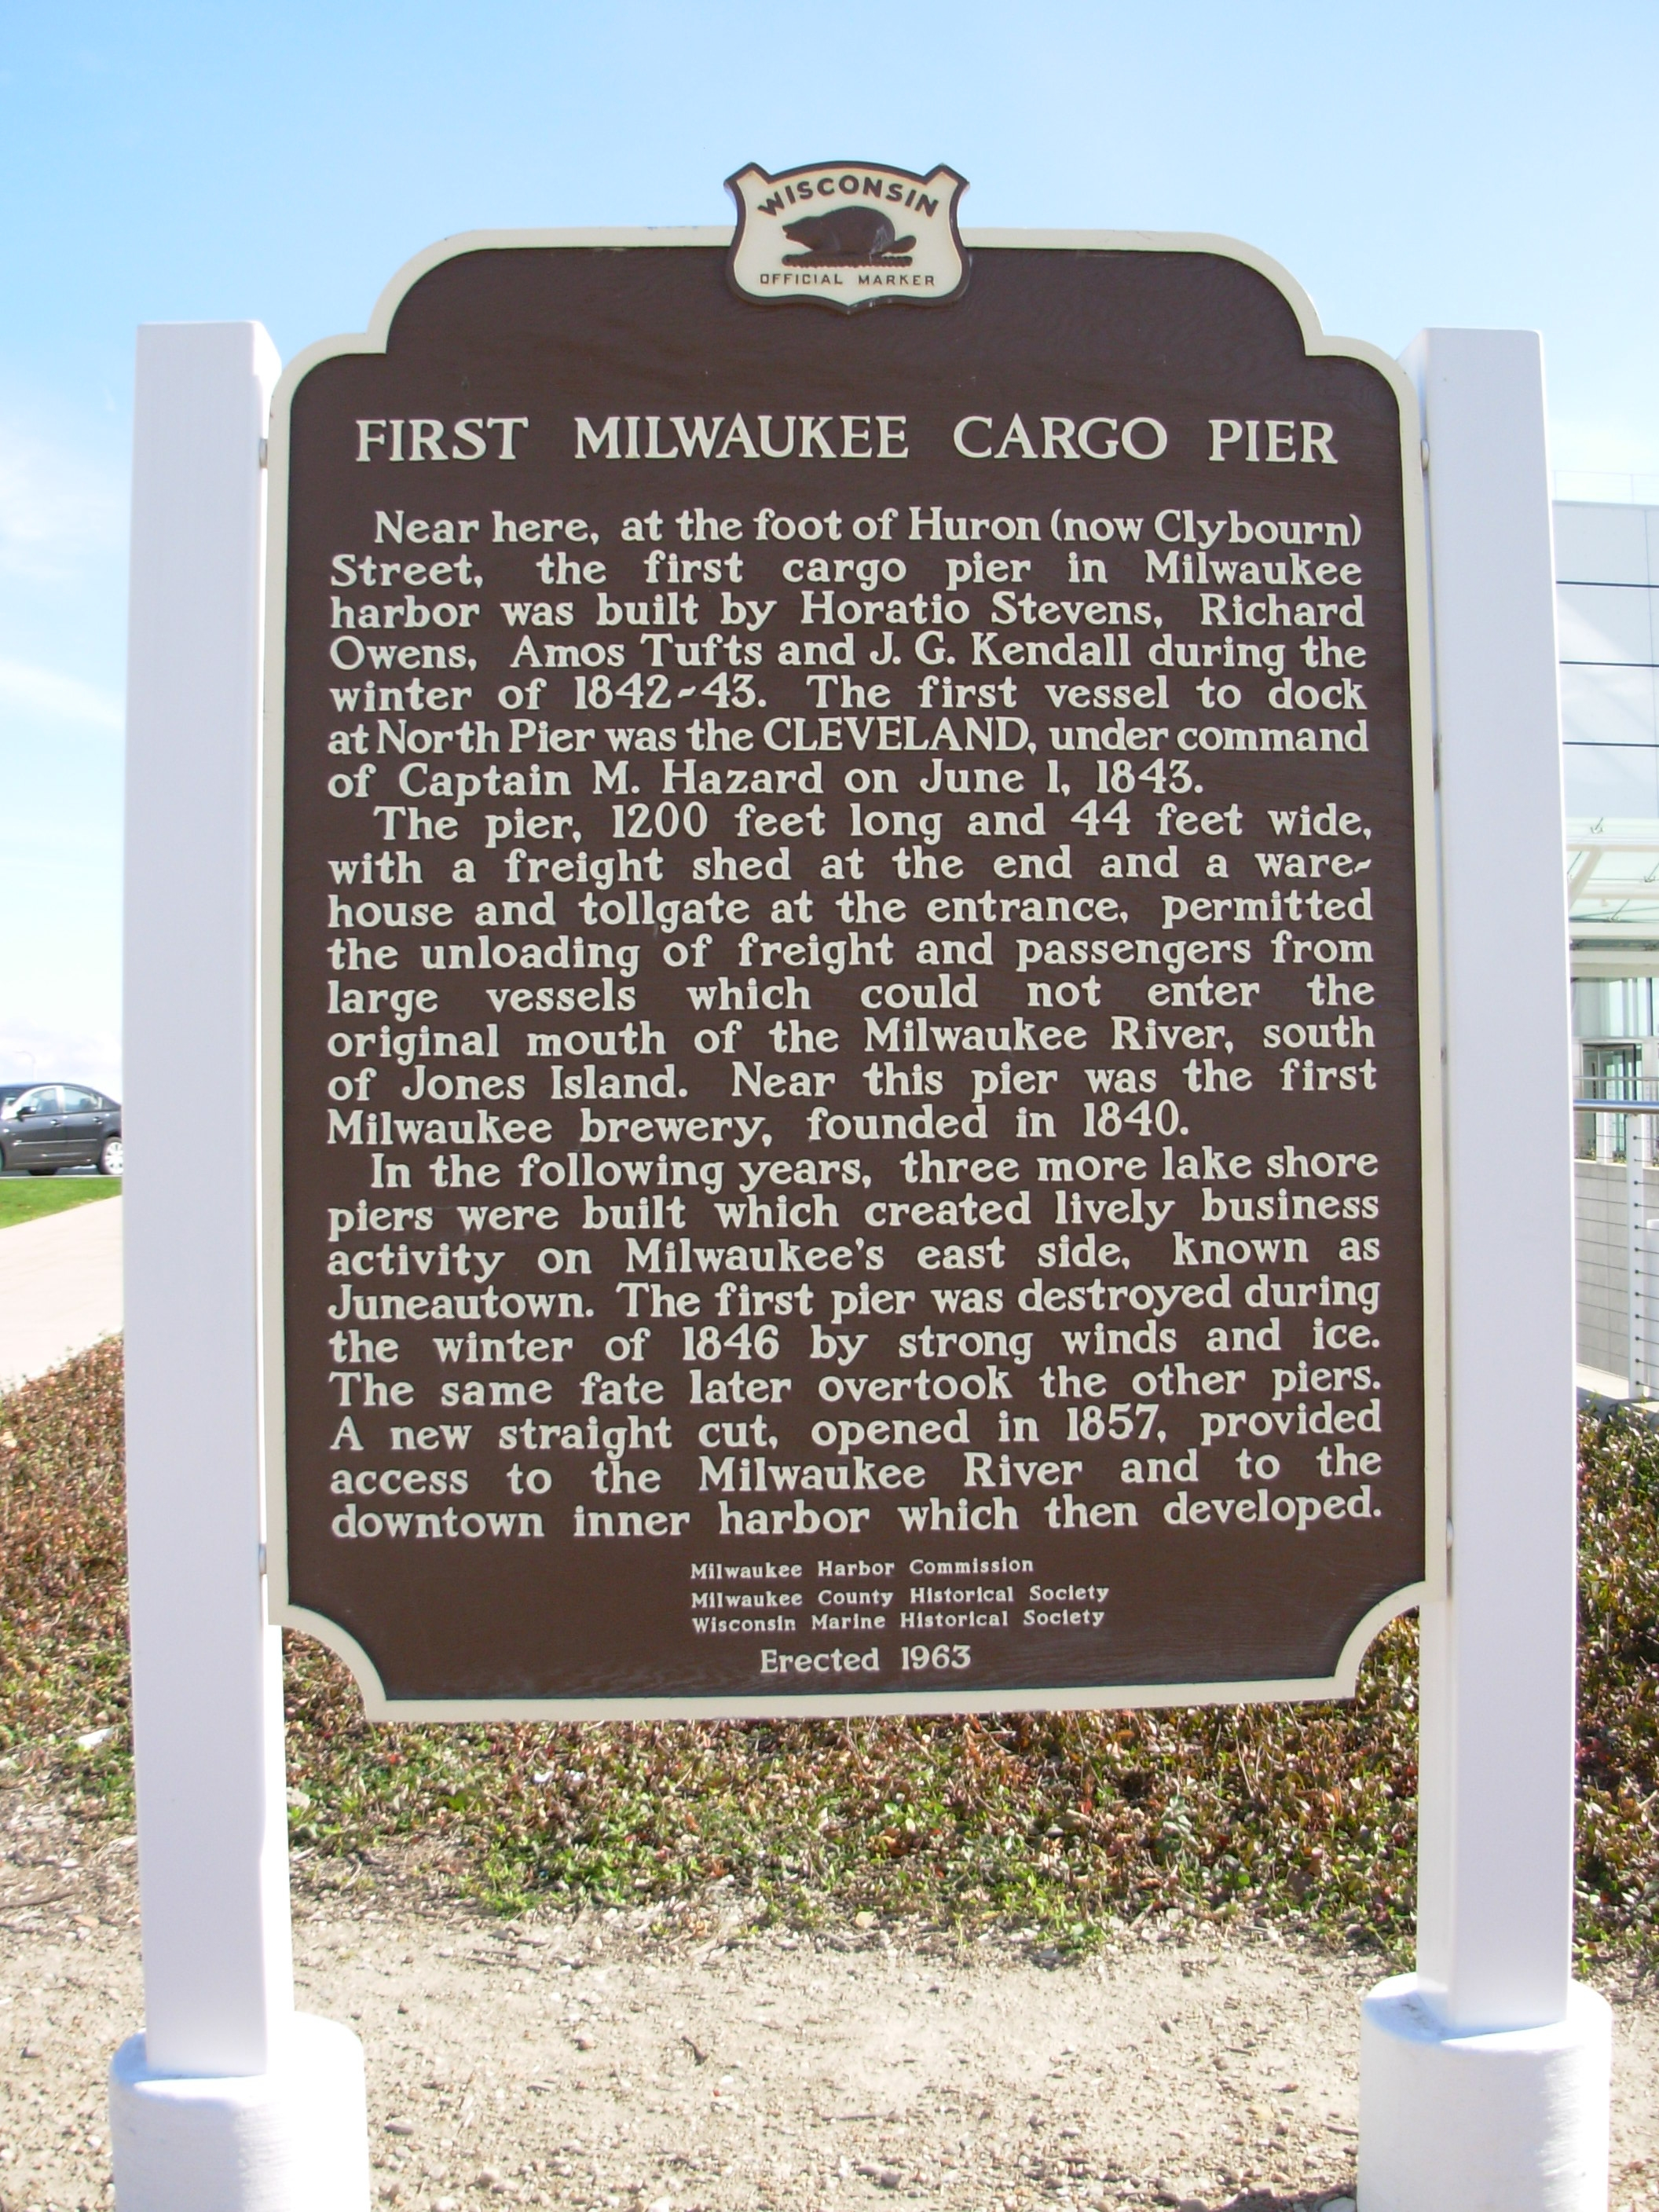 First Milwaukee Cargo Pier Marker